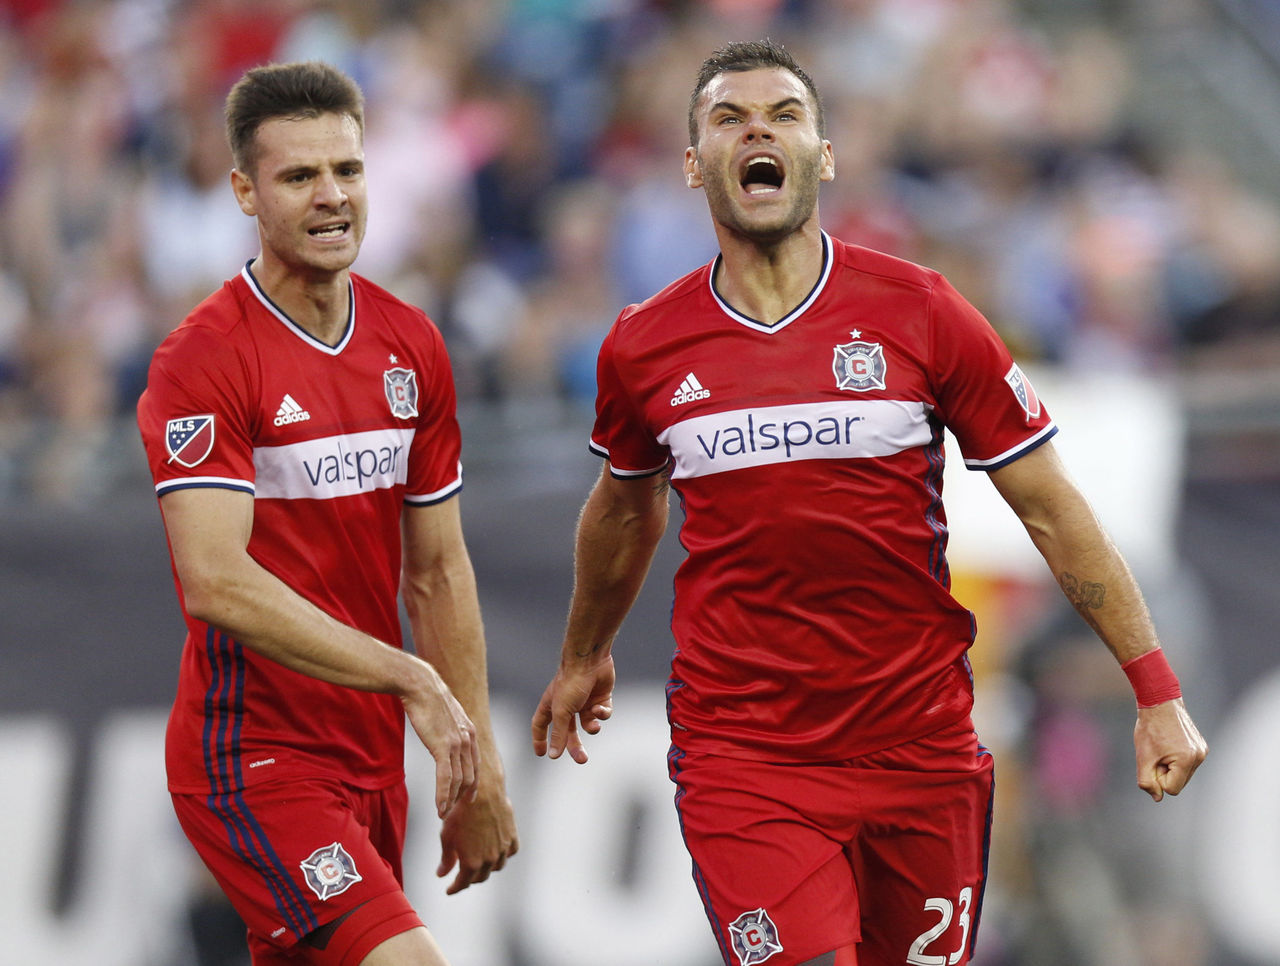 Cropped 2017 06 18t023127z 1621607446 nocid rtrmadp 3 mls chicago fire at new england revolution